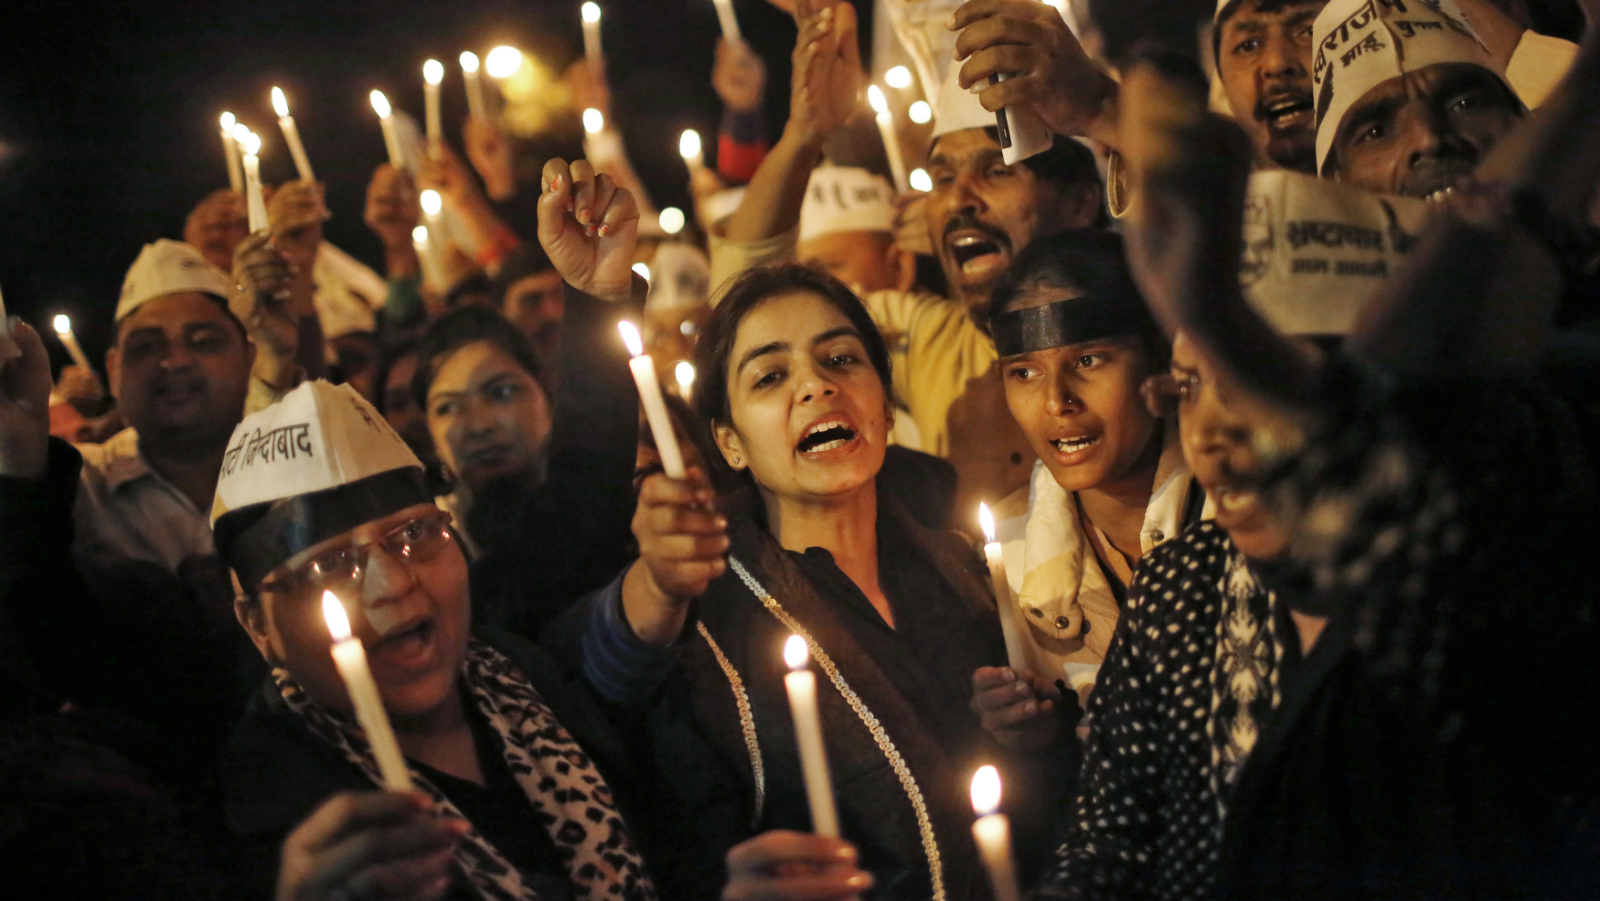 Supporters of Aam Aadmi (Common Man) Party (AAP) shout slogans as they participate in a candle light vigil during a protest against the rape of a female passenger, in New Delhi December 8, 2014. U.S. online ride-hailing service Uber has been banned from operating in the Indian capital after a female passenger accused one of its drivers of rape, a case that has reignited a debate about the safety of women in the South Asian nation.